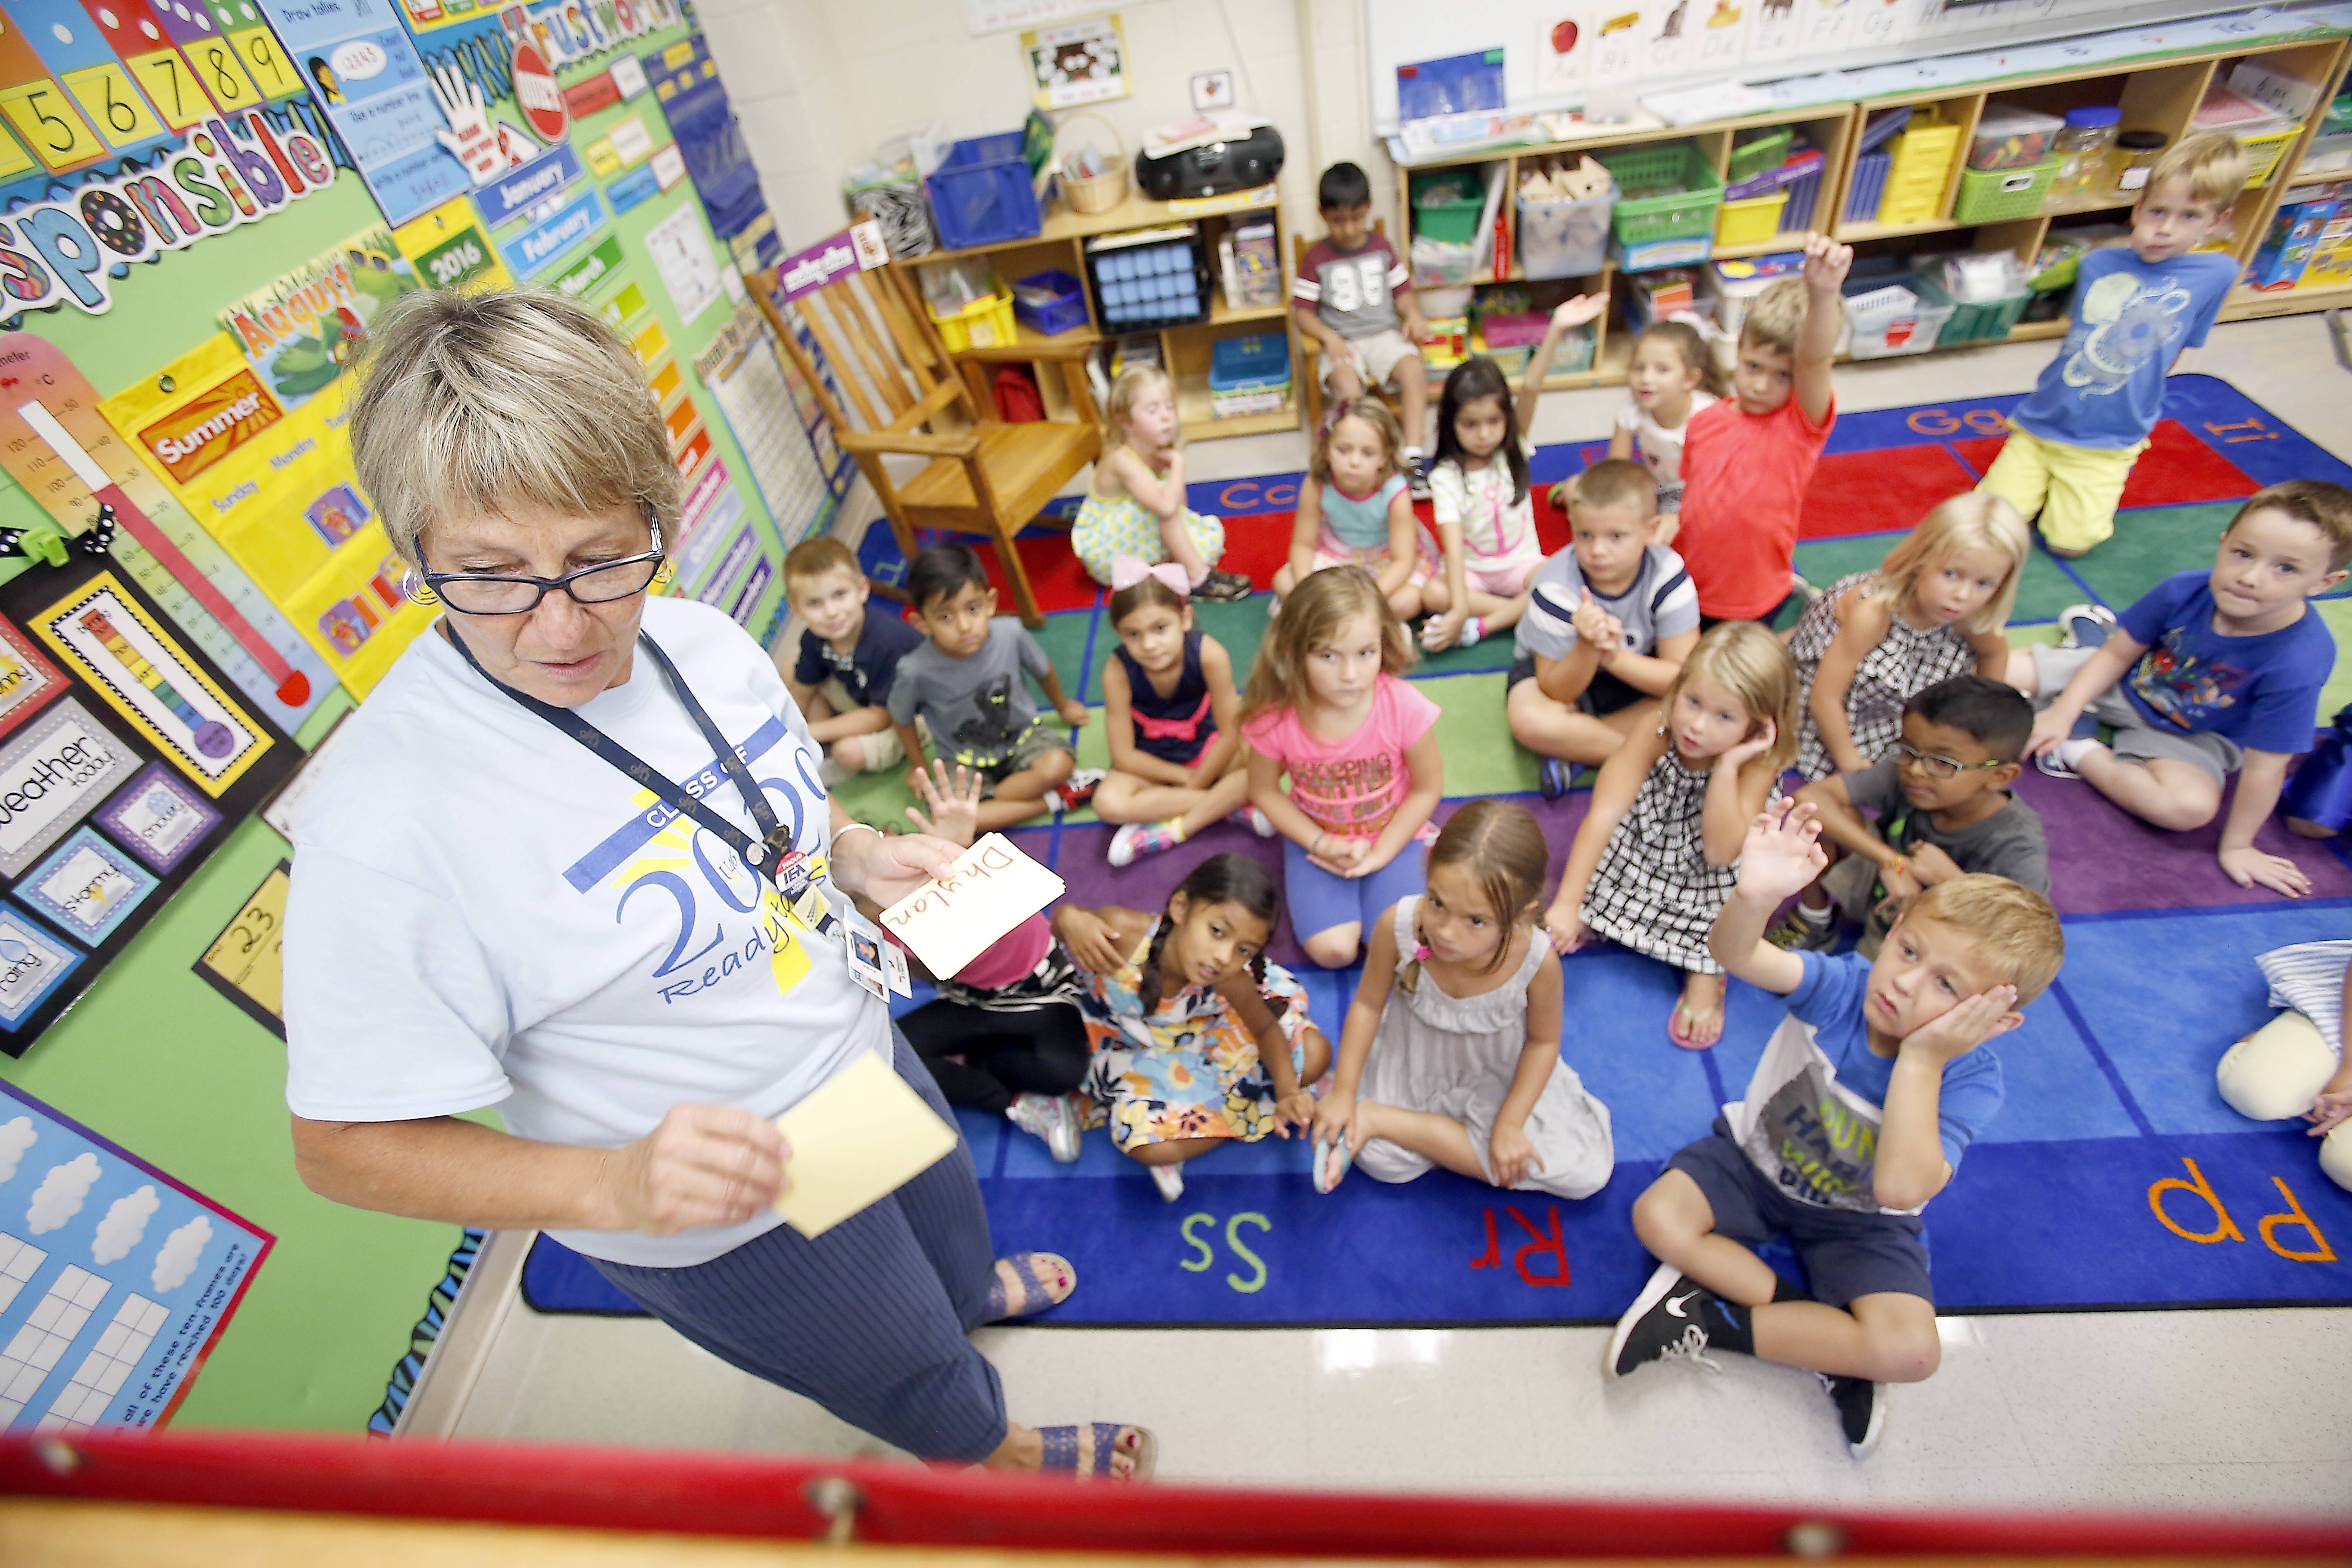 Kindergarten teacher Jan Wilcox tends to her young charges during the first day of full-day kindergarten at Centennial School in Bartlett.